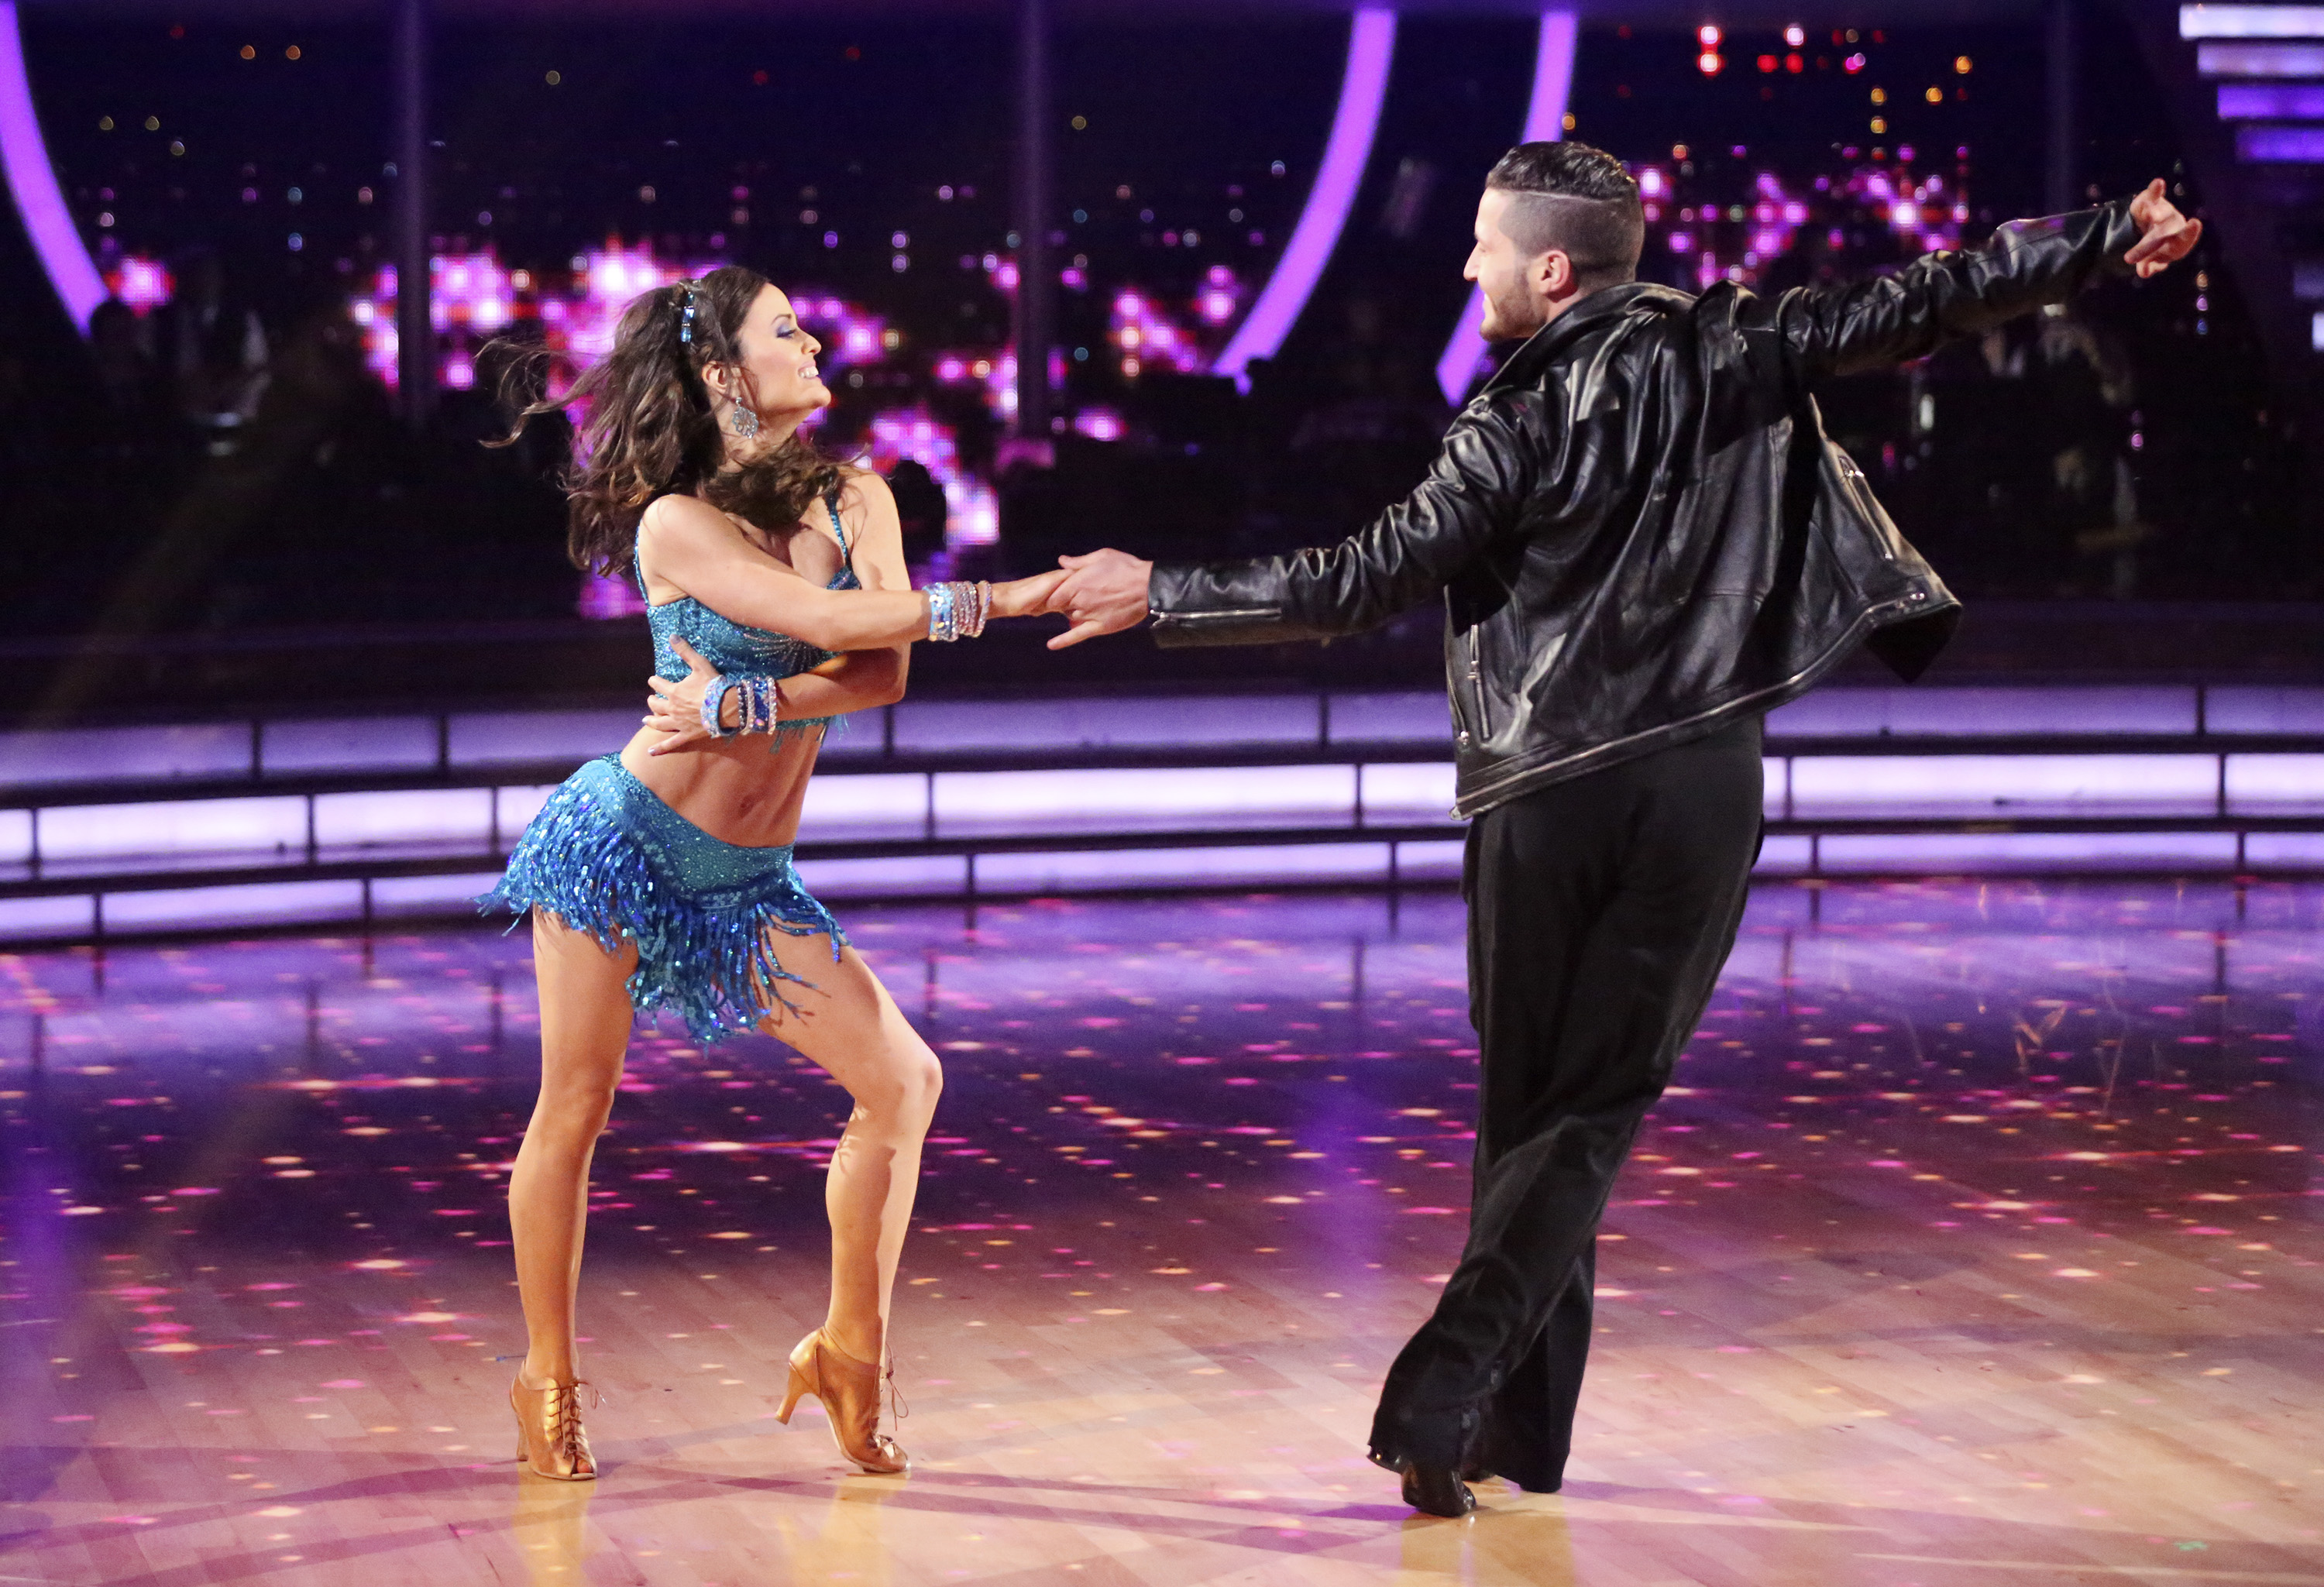 DANCING WITH THE STARS -  Episode 1806  - It's an all out celebration on  Dancing with the Stars  as the celebrities got the party started MONDAY, APRIL 21 (8:00-10:01 p.m., ET) on the ABC Television Network. T